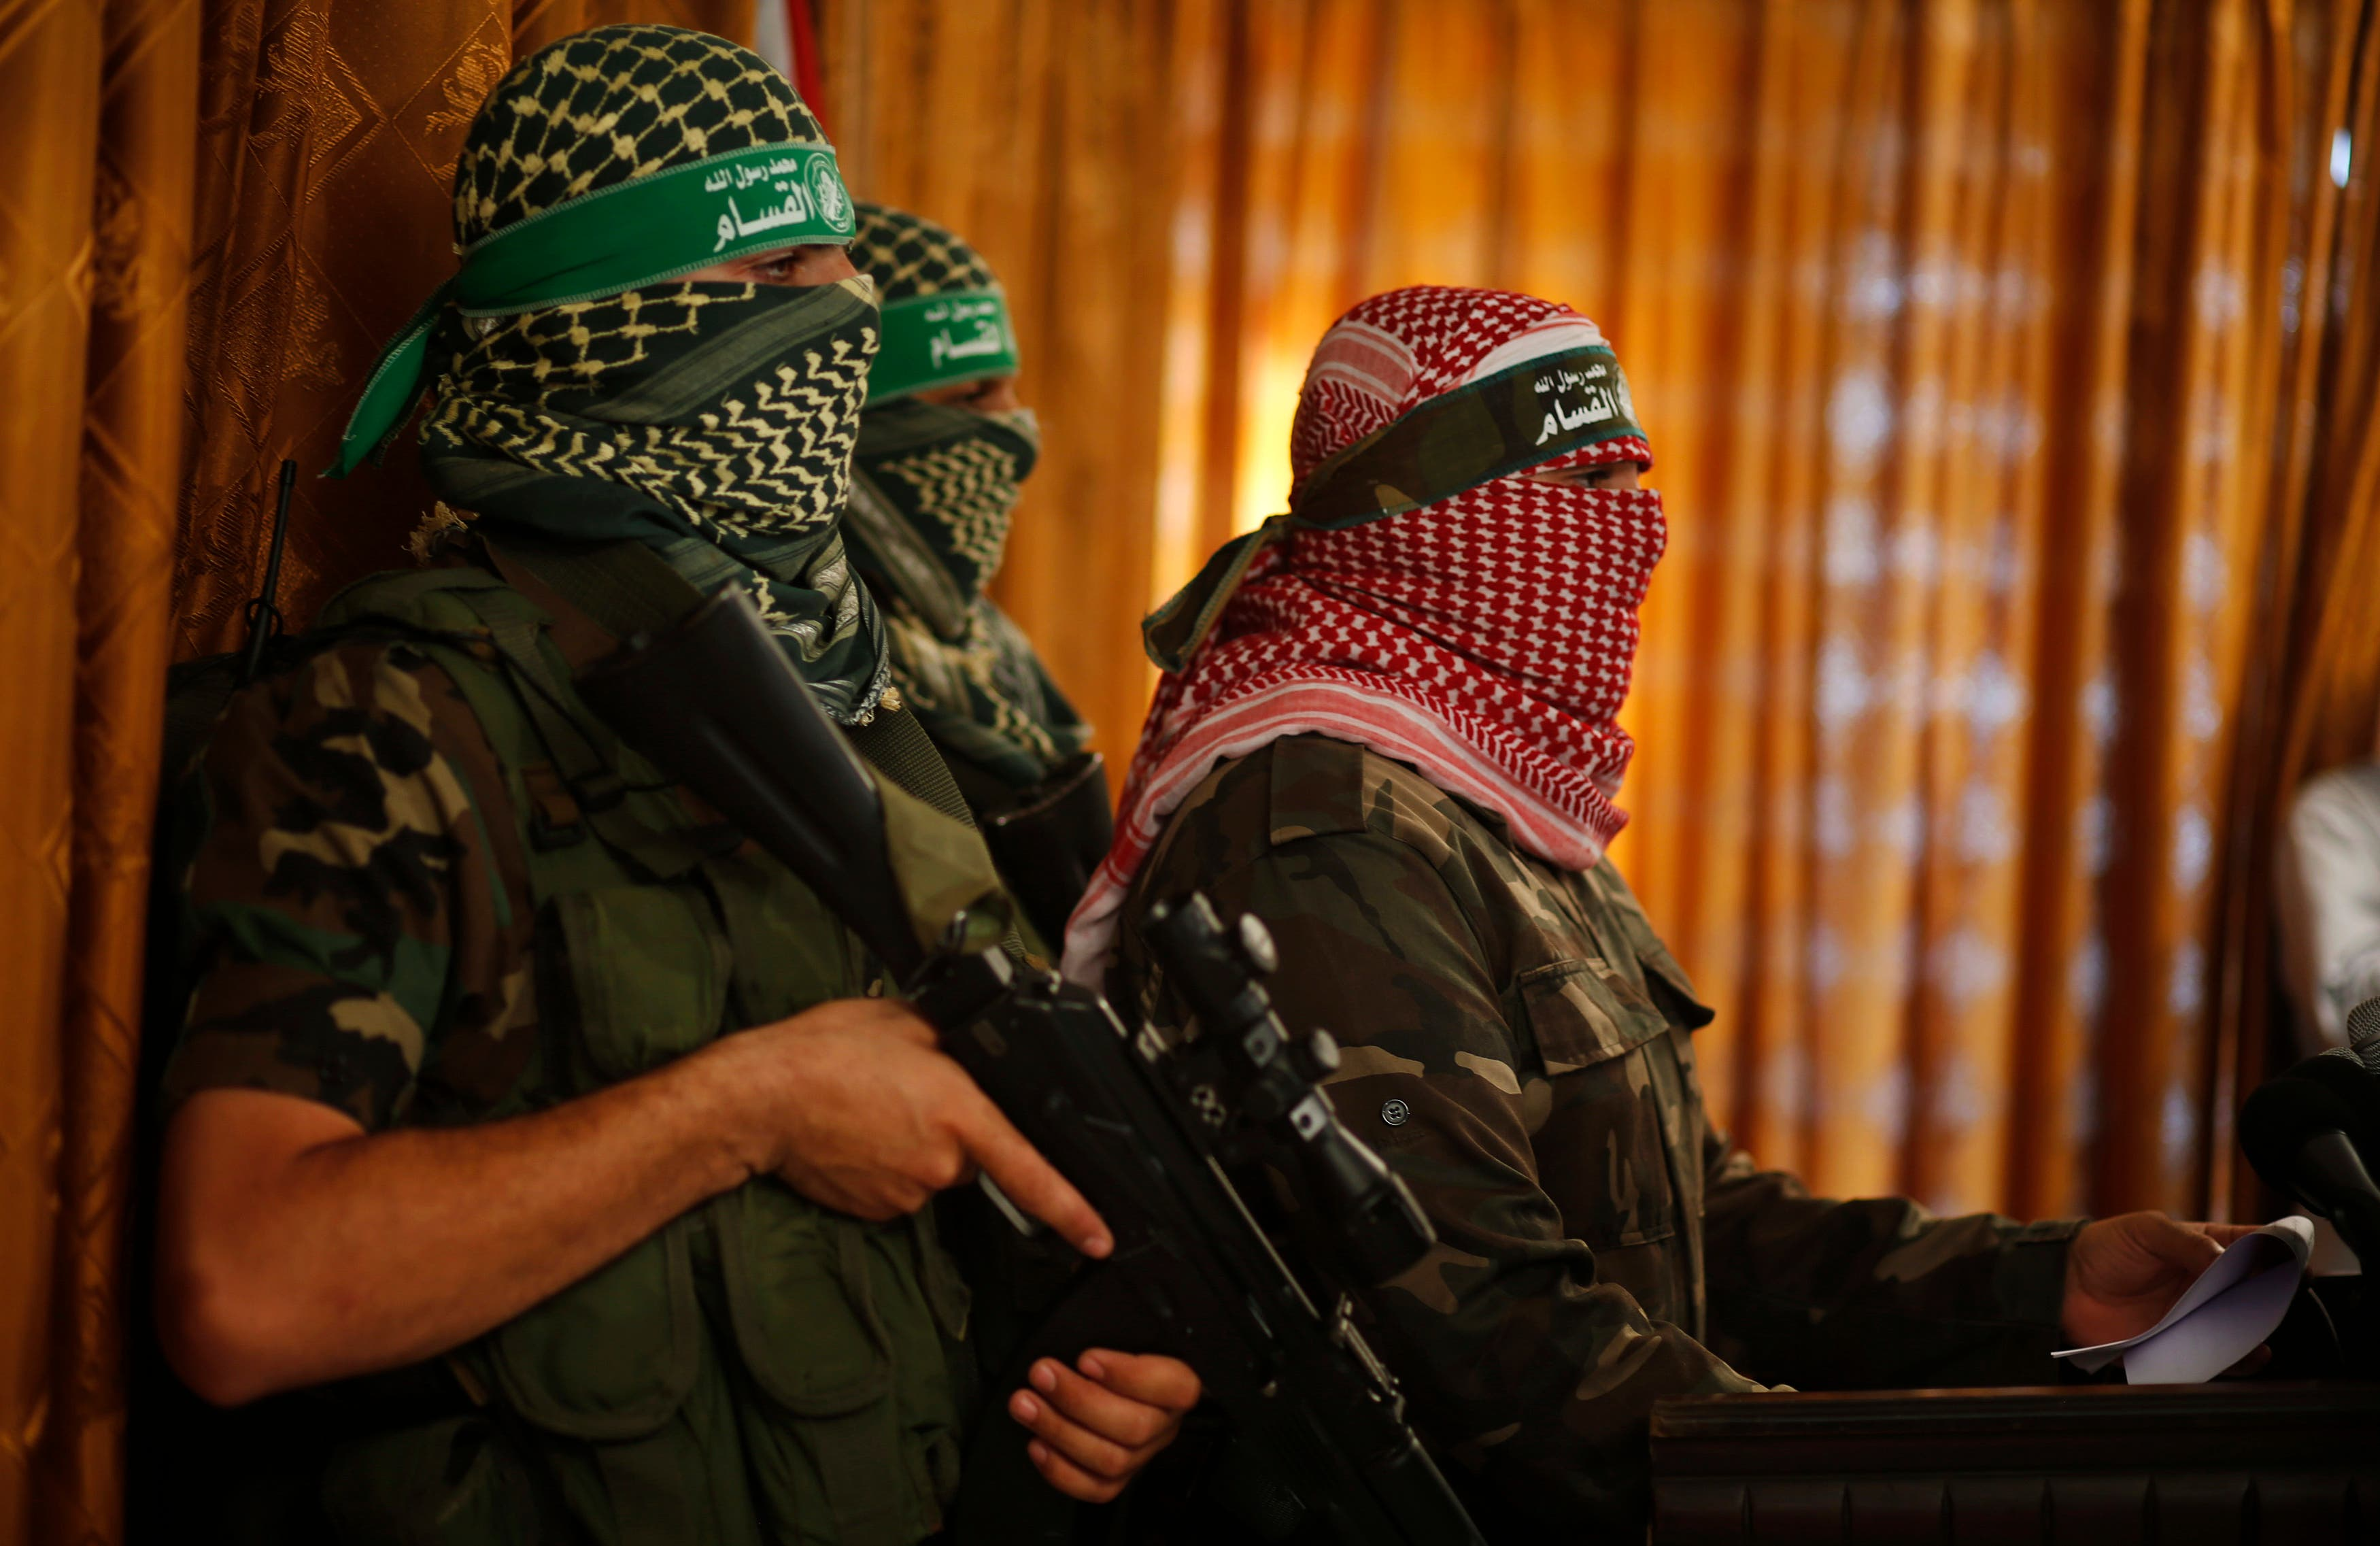 Hamas' armed wing spokesman speaks during a news conference in Gaza City July 3, 2014. reuters